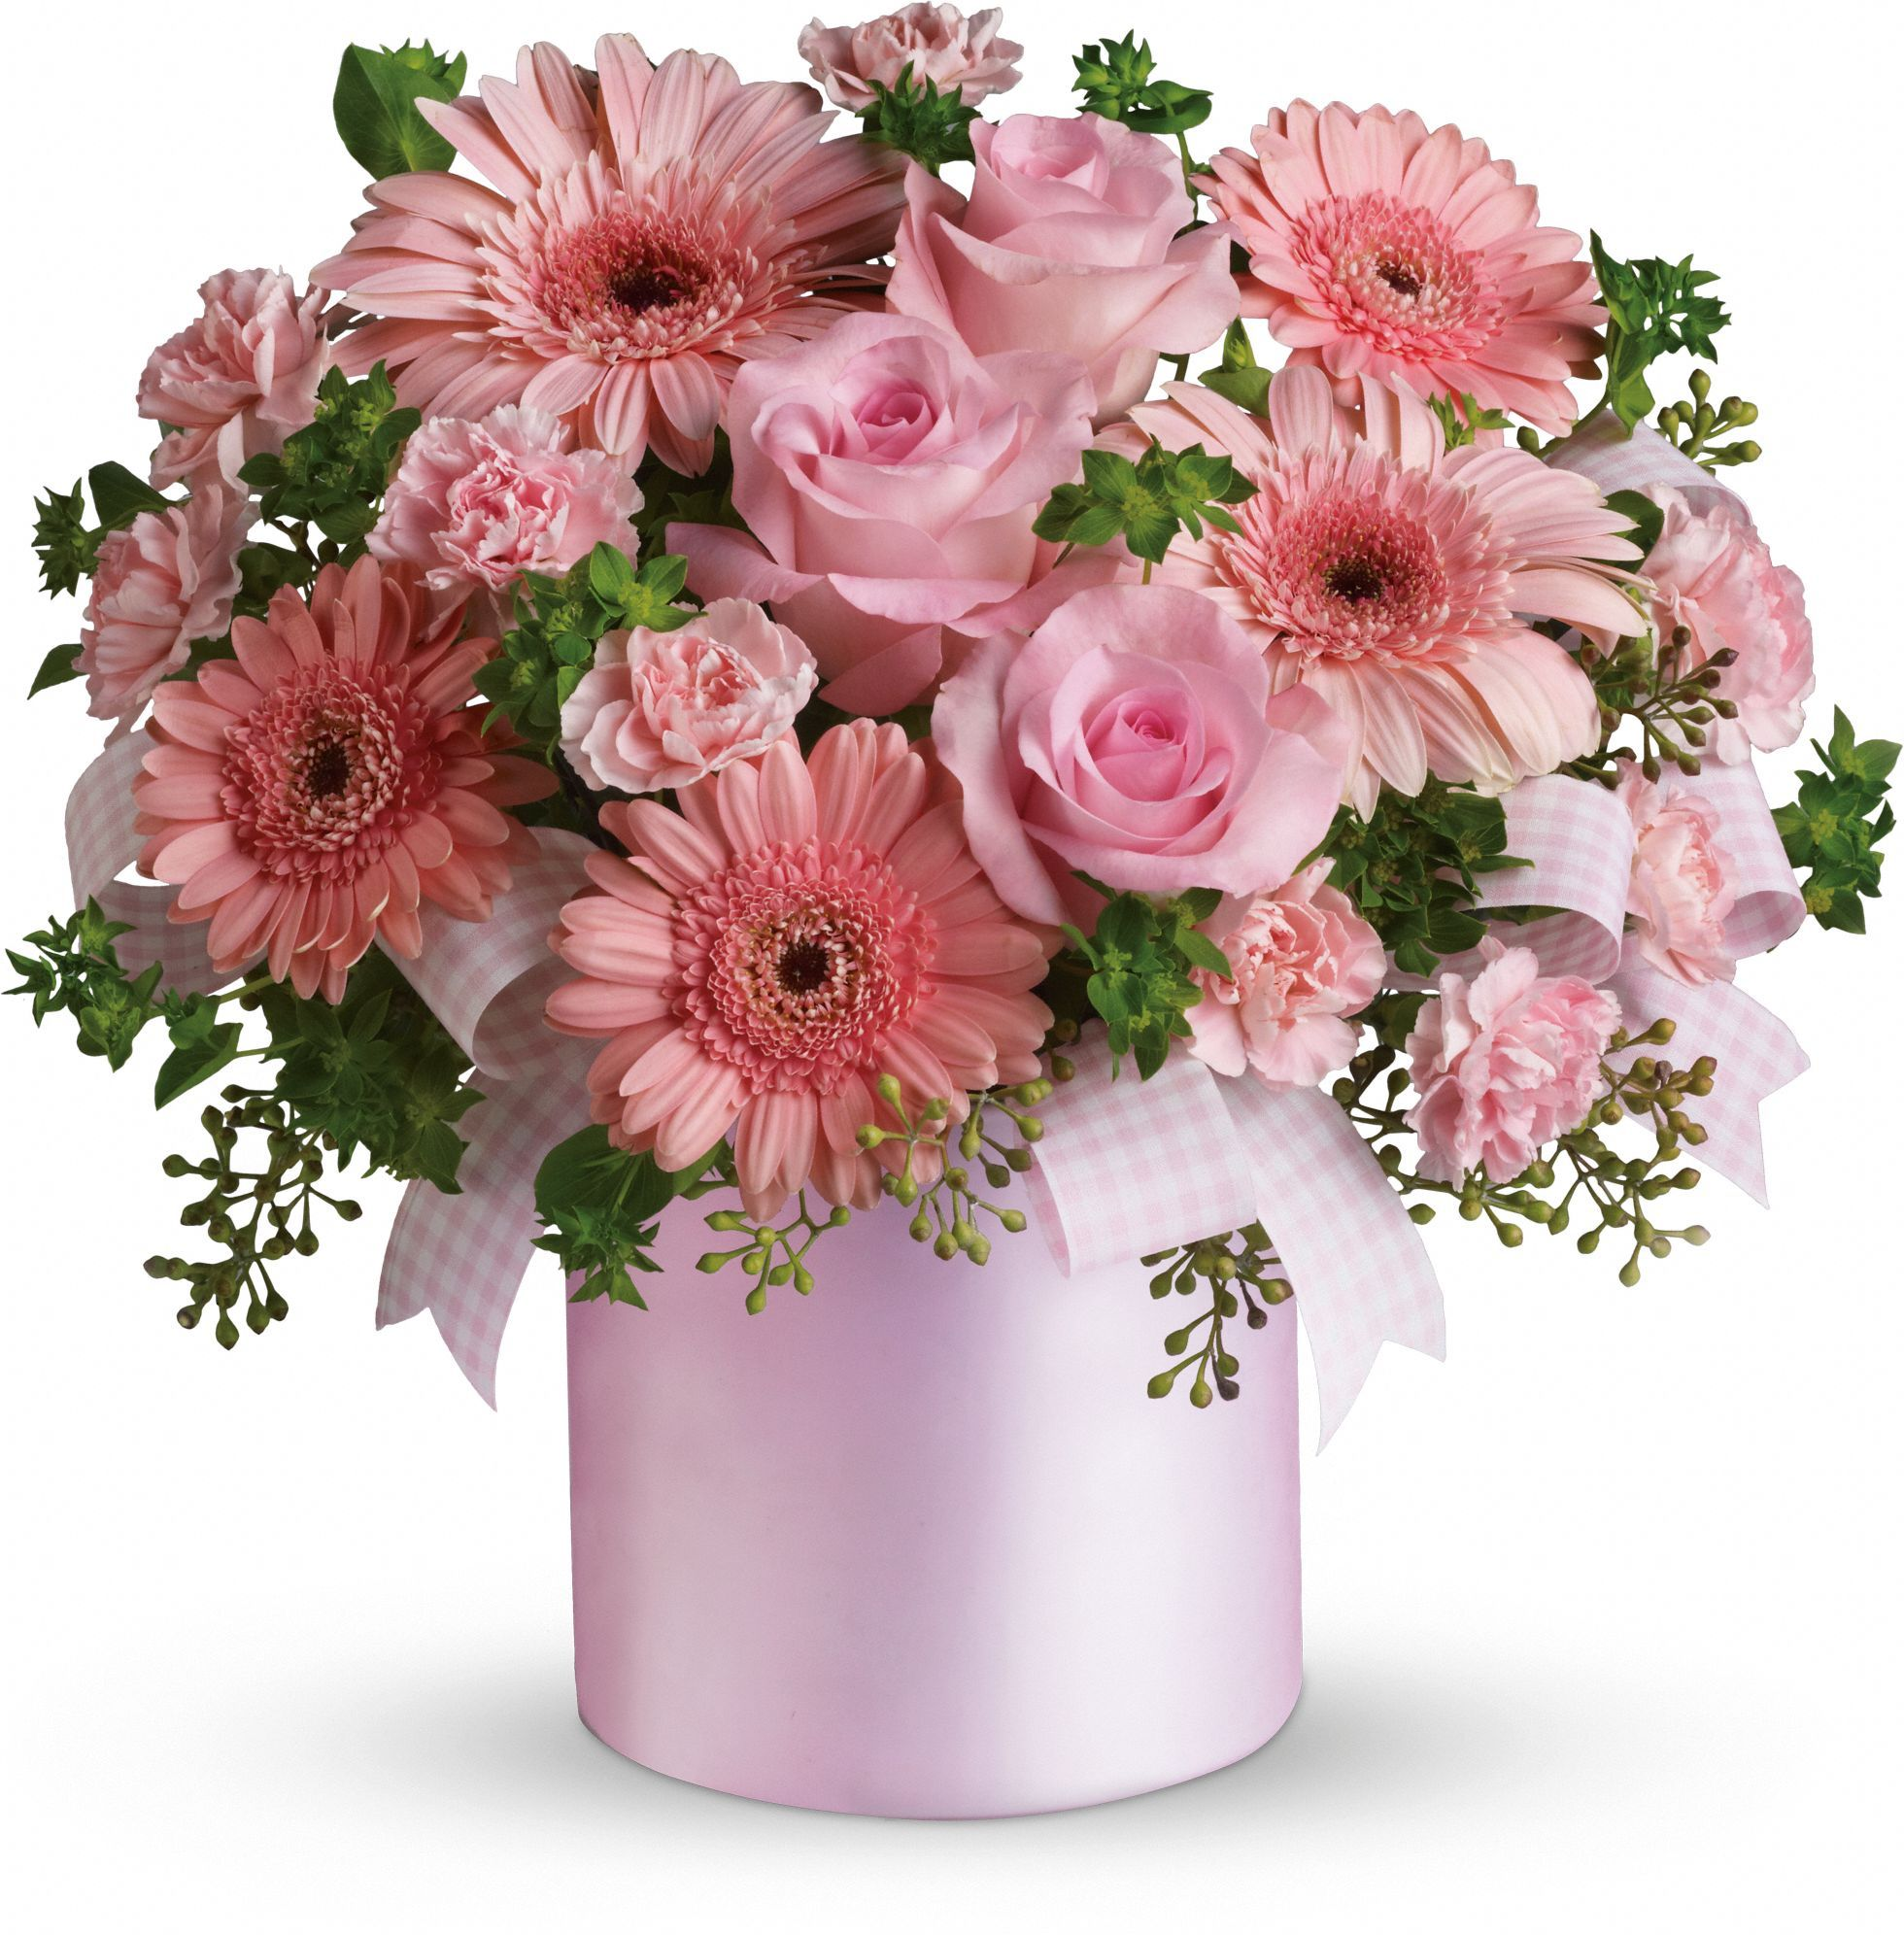 Telefloras lovely lady pink flowers flores pinterest flower isnt she lovely isnt she wonderful perfect for celebrating new baby girls and new moms this pretty arrangement has feminine charm to spare izmirmasajfo Image collections